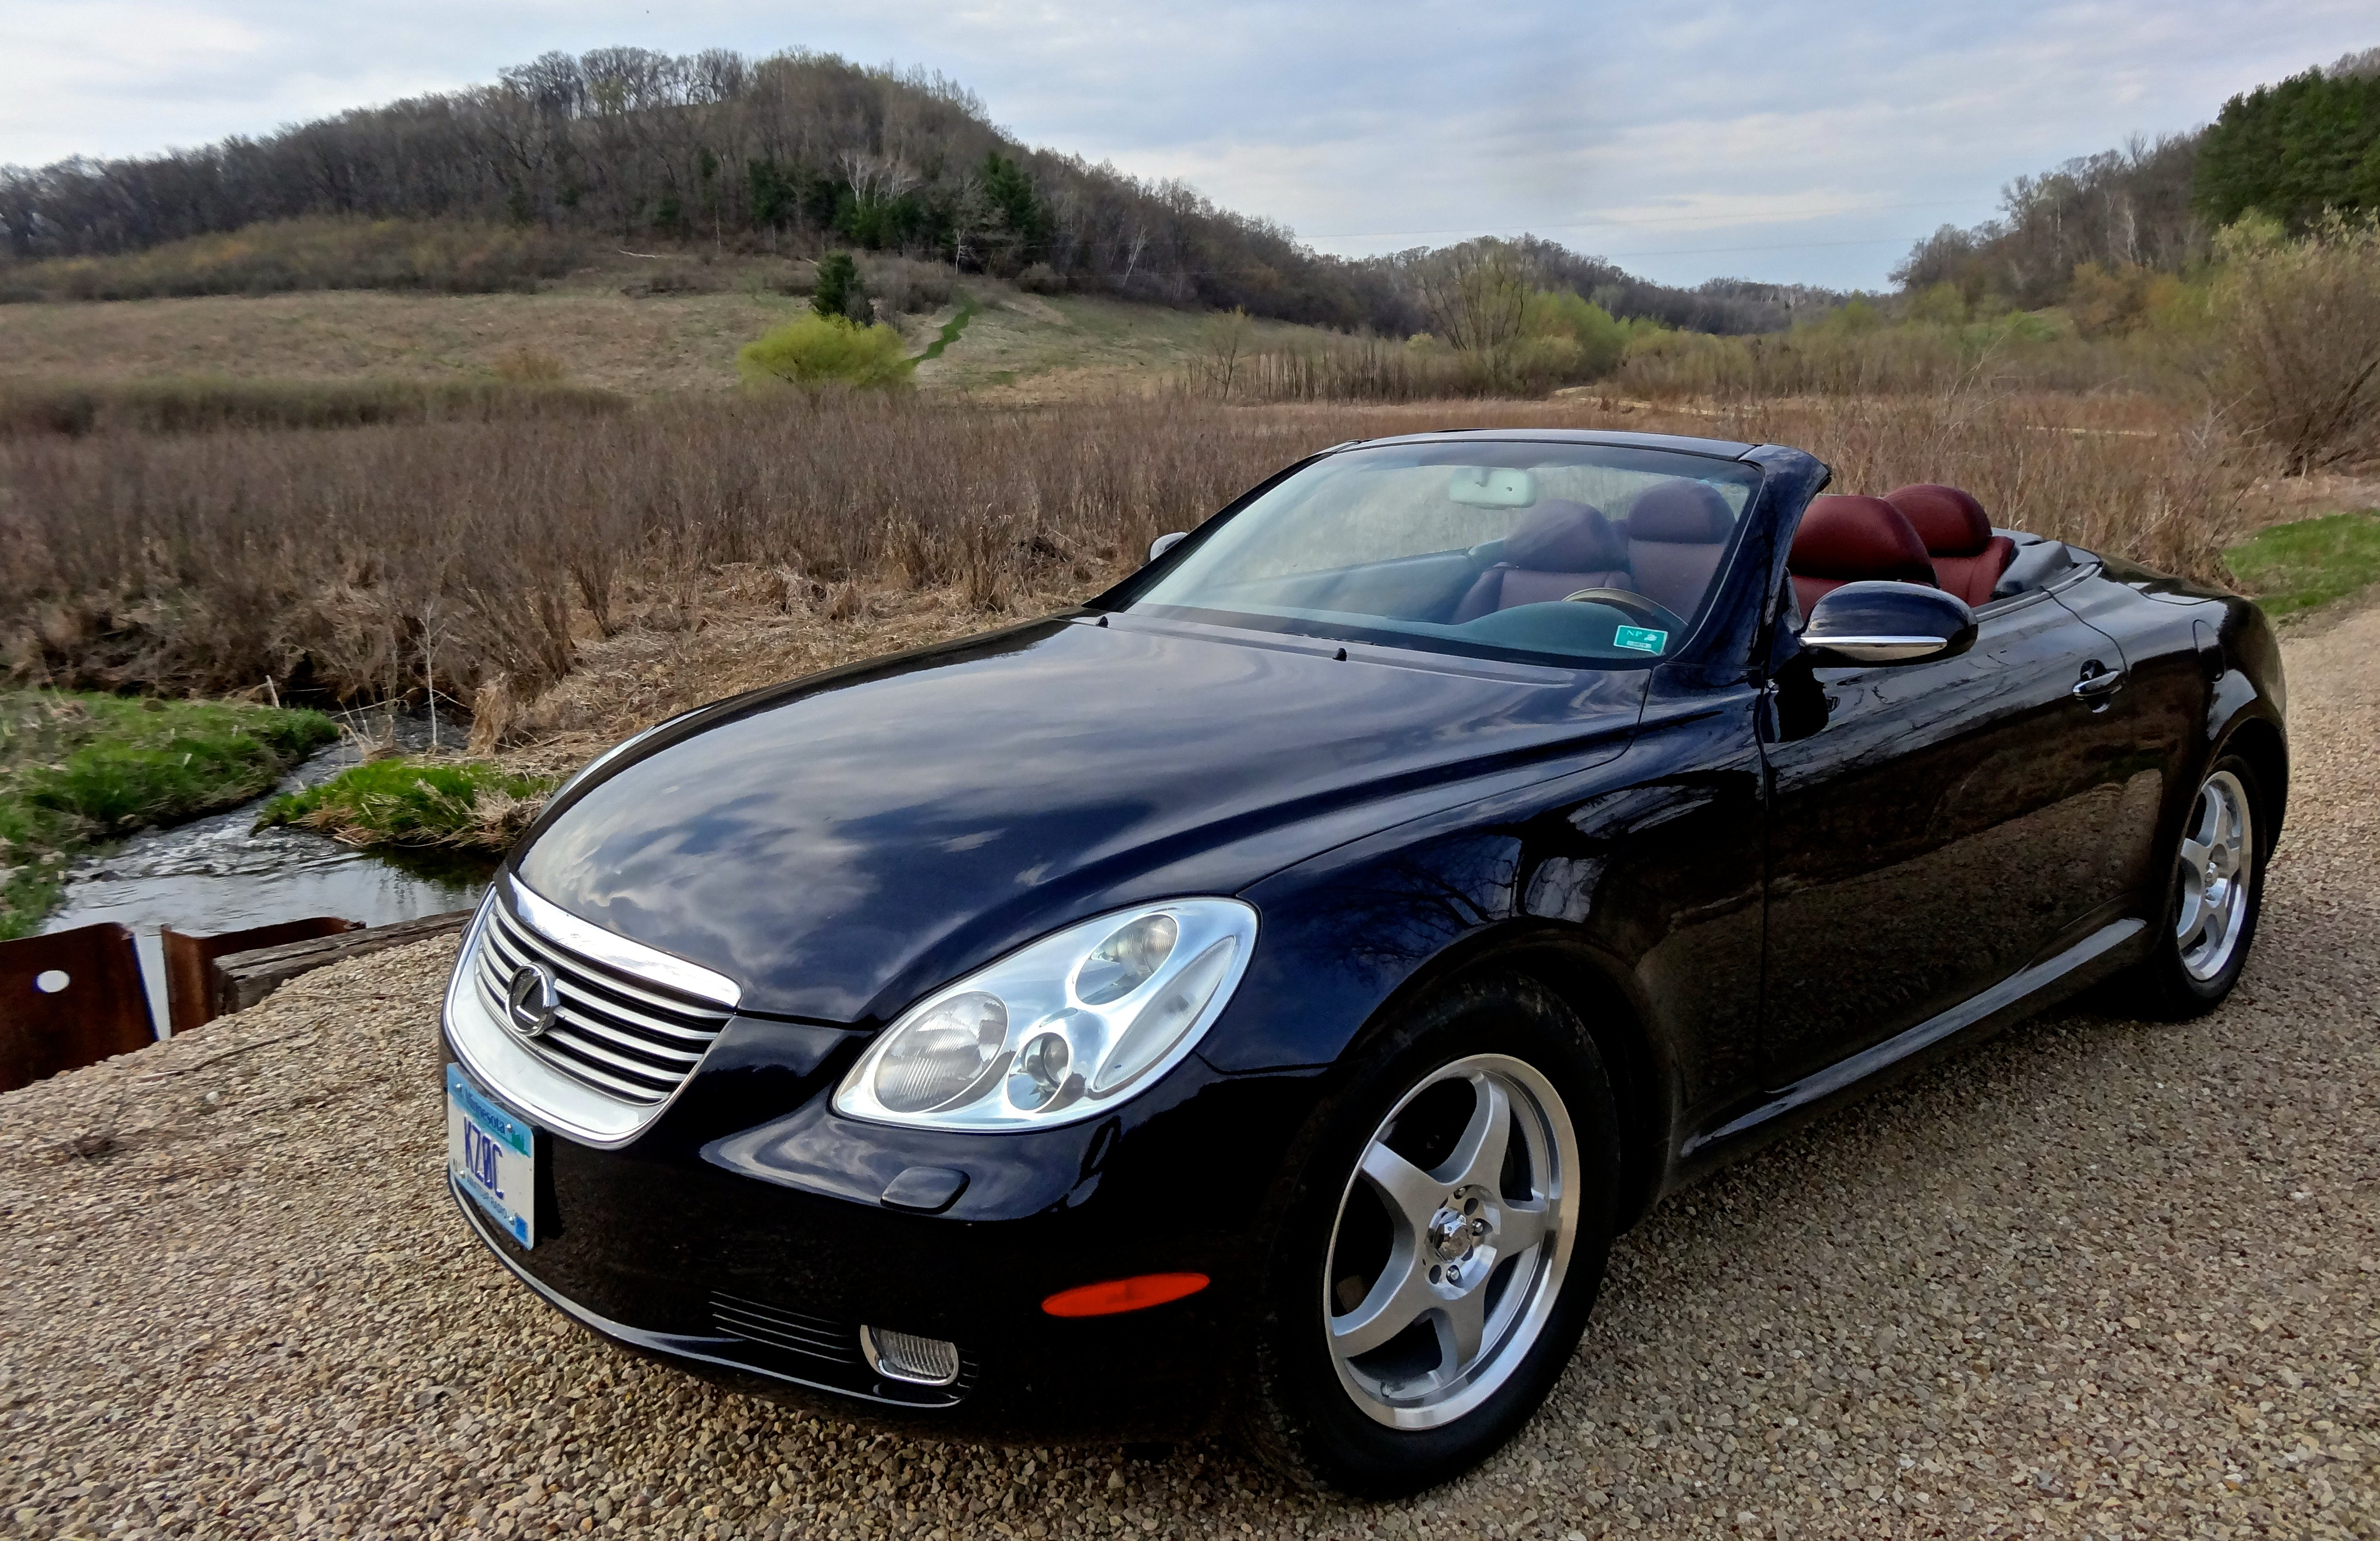 2002 Lexus SC430 for sale by owner (SOLD) – Mike O'Connor